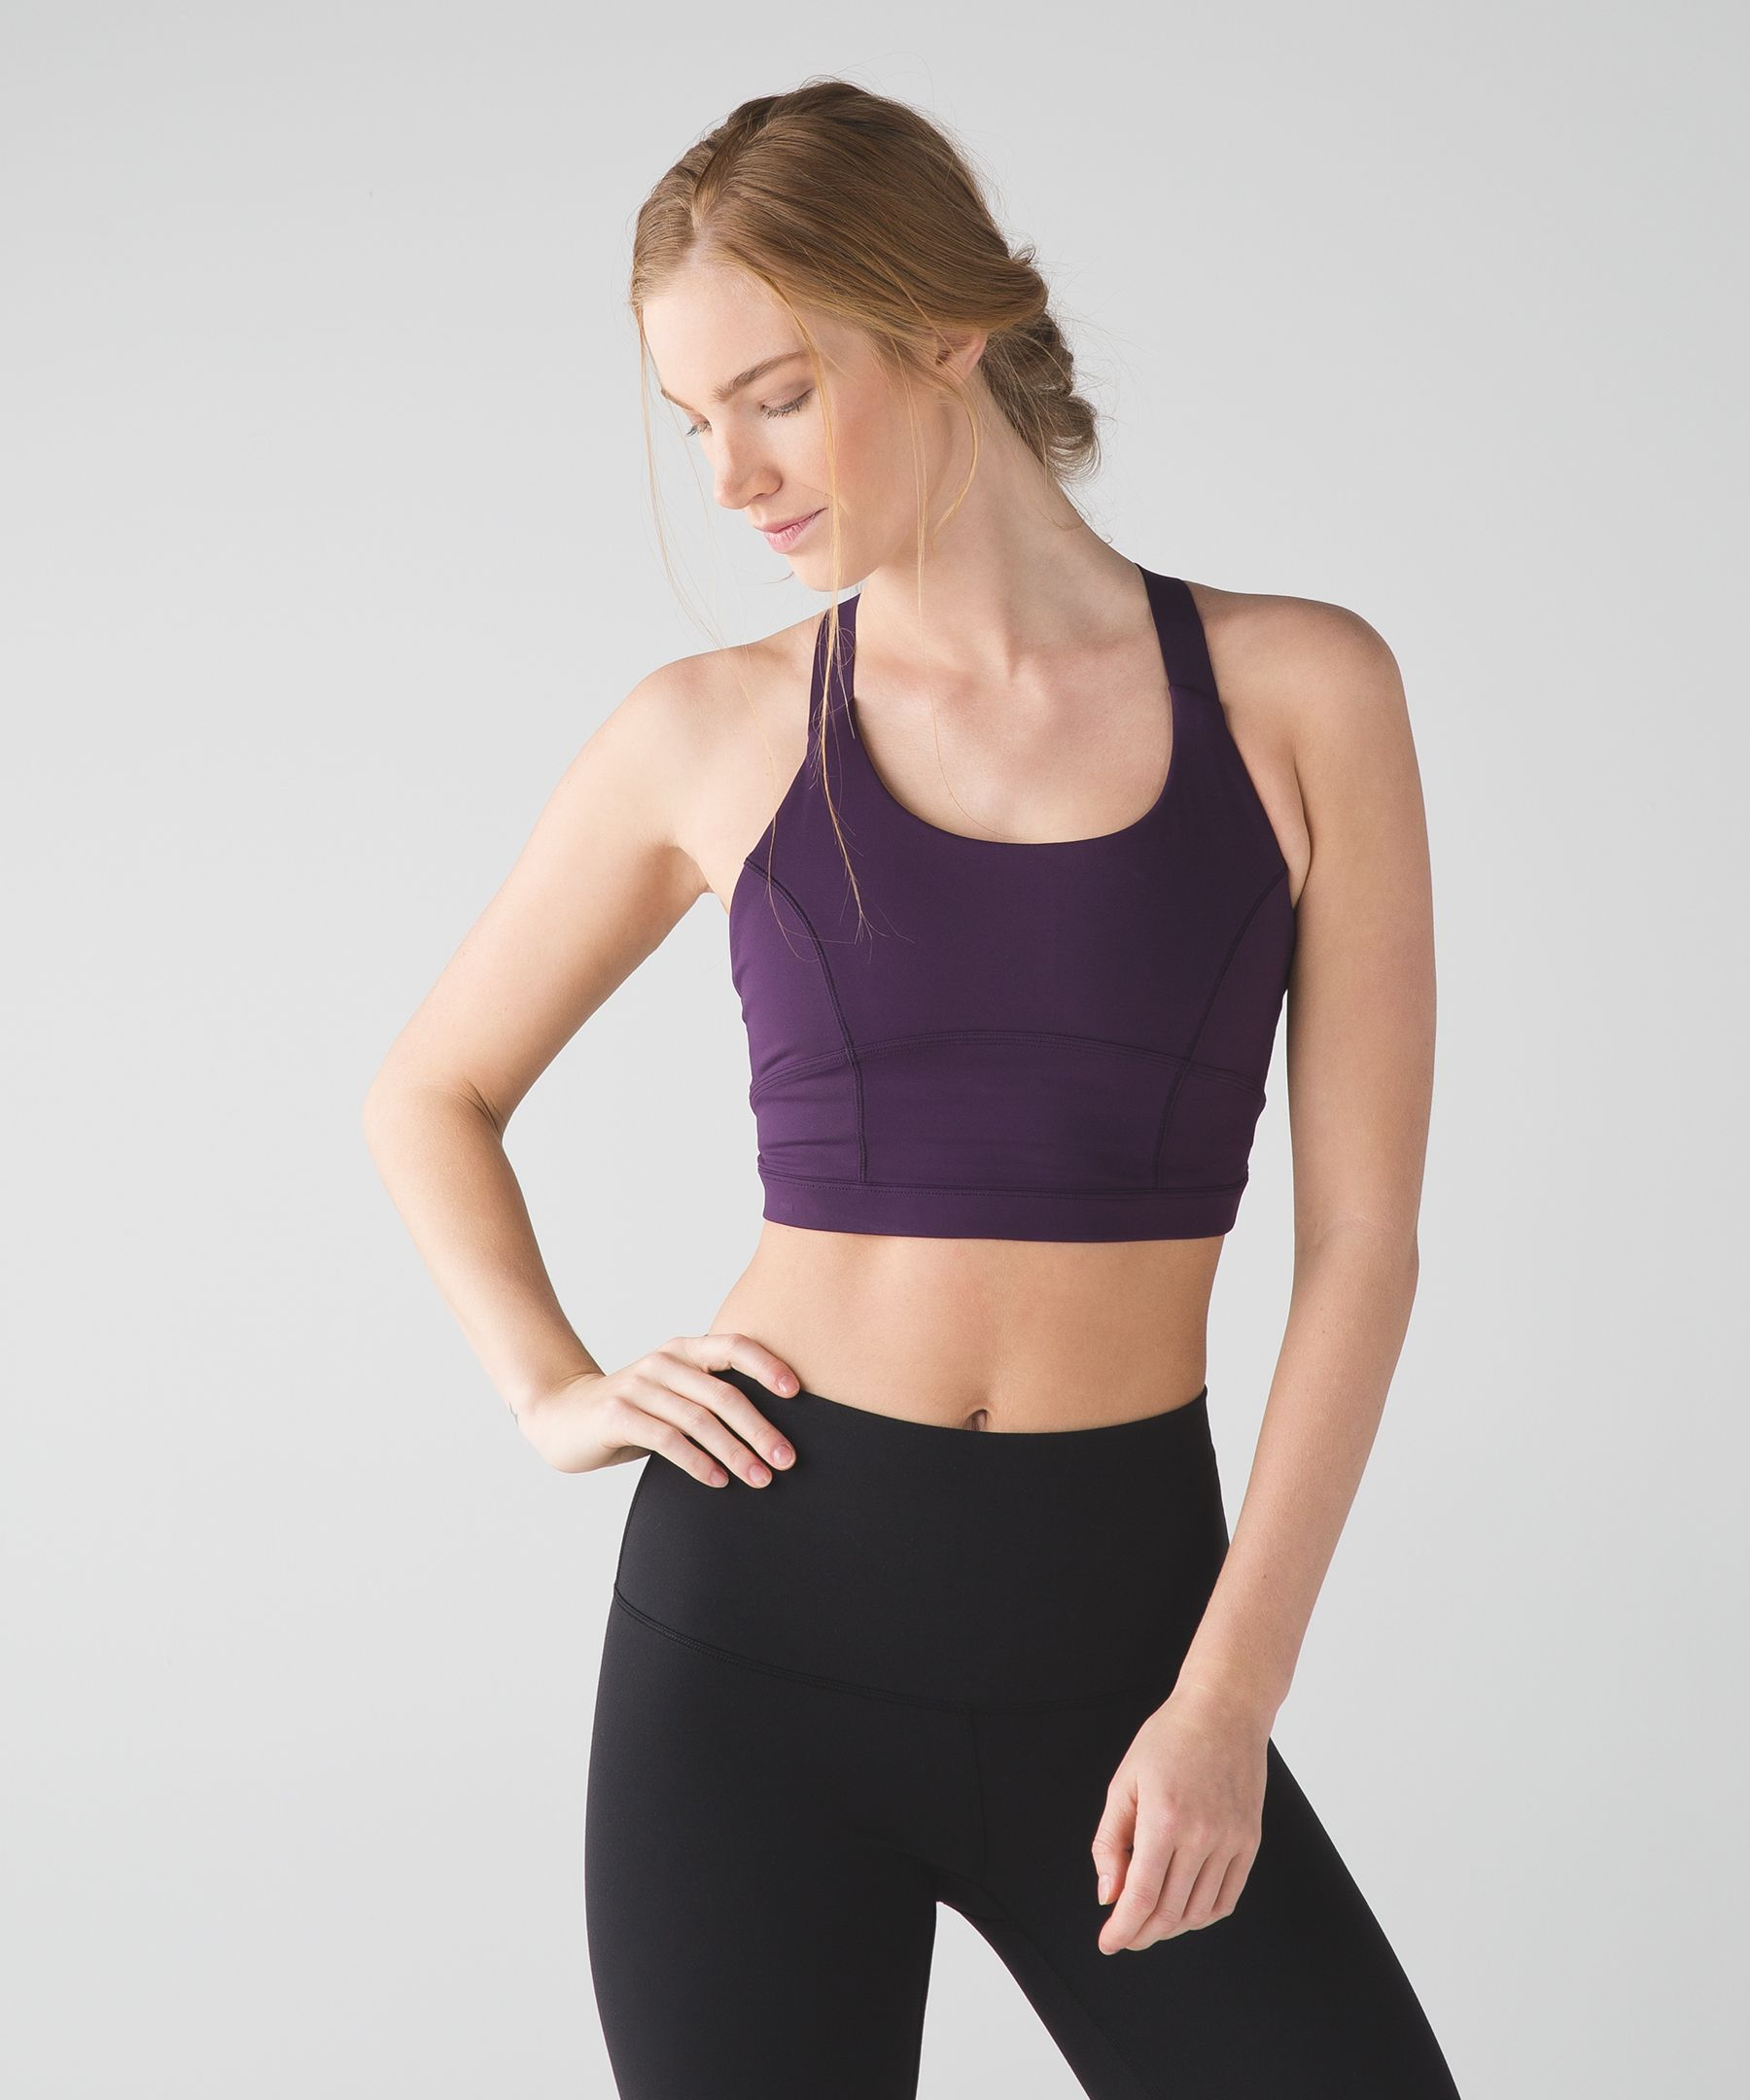 Pure Practice Bra | Women's Sports Bras